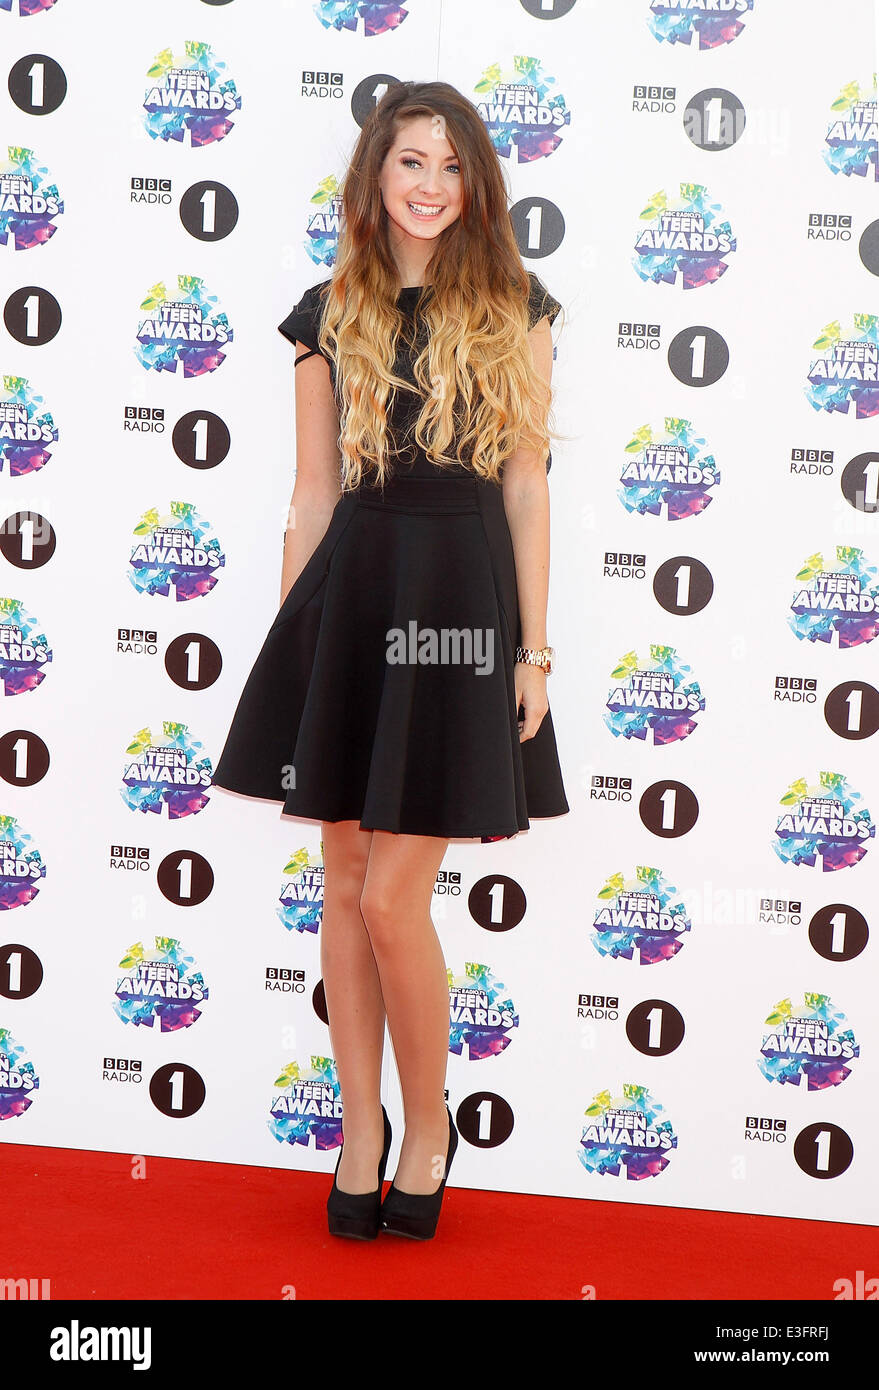 bbc radio one teen awards at wembley arena featuring: zoella where